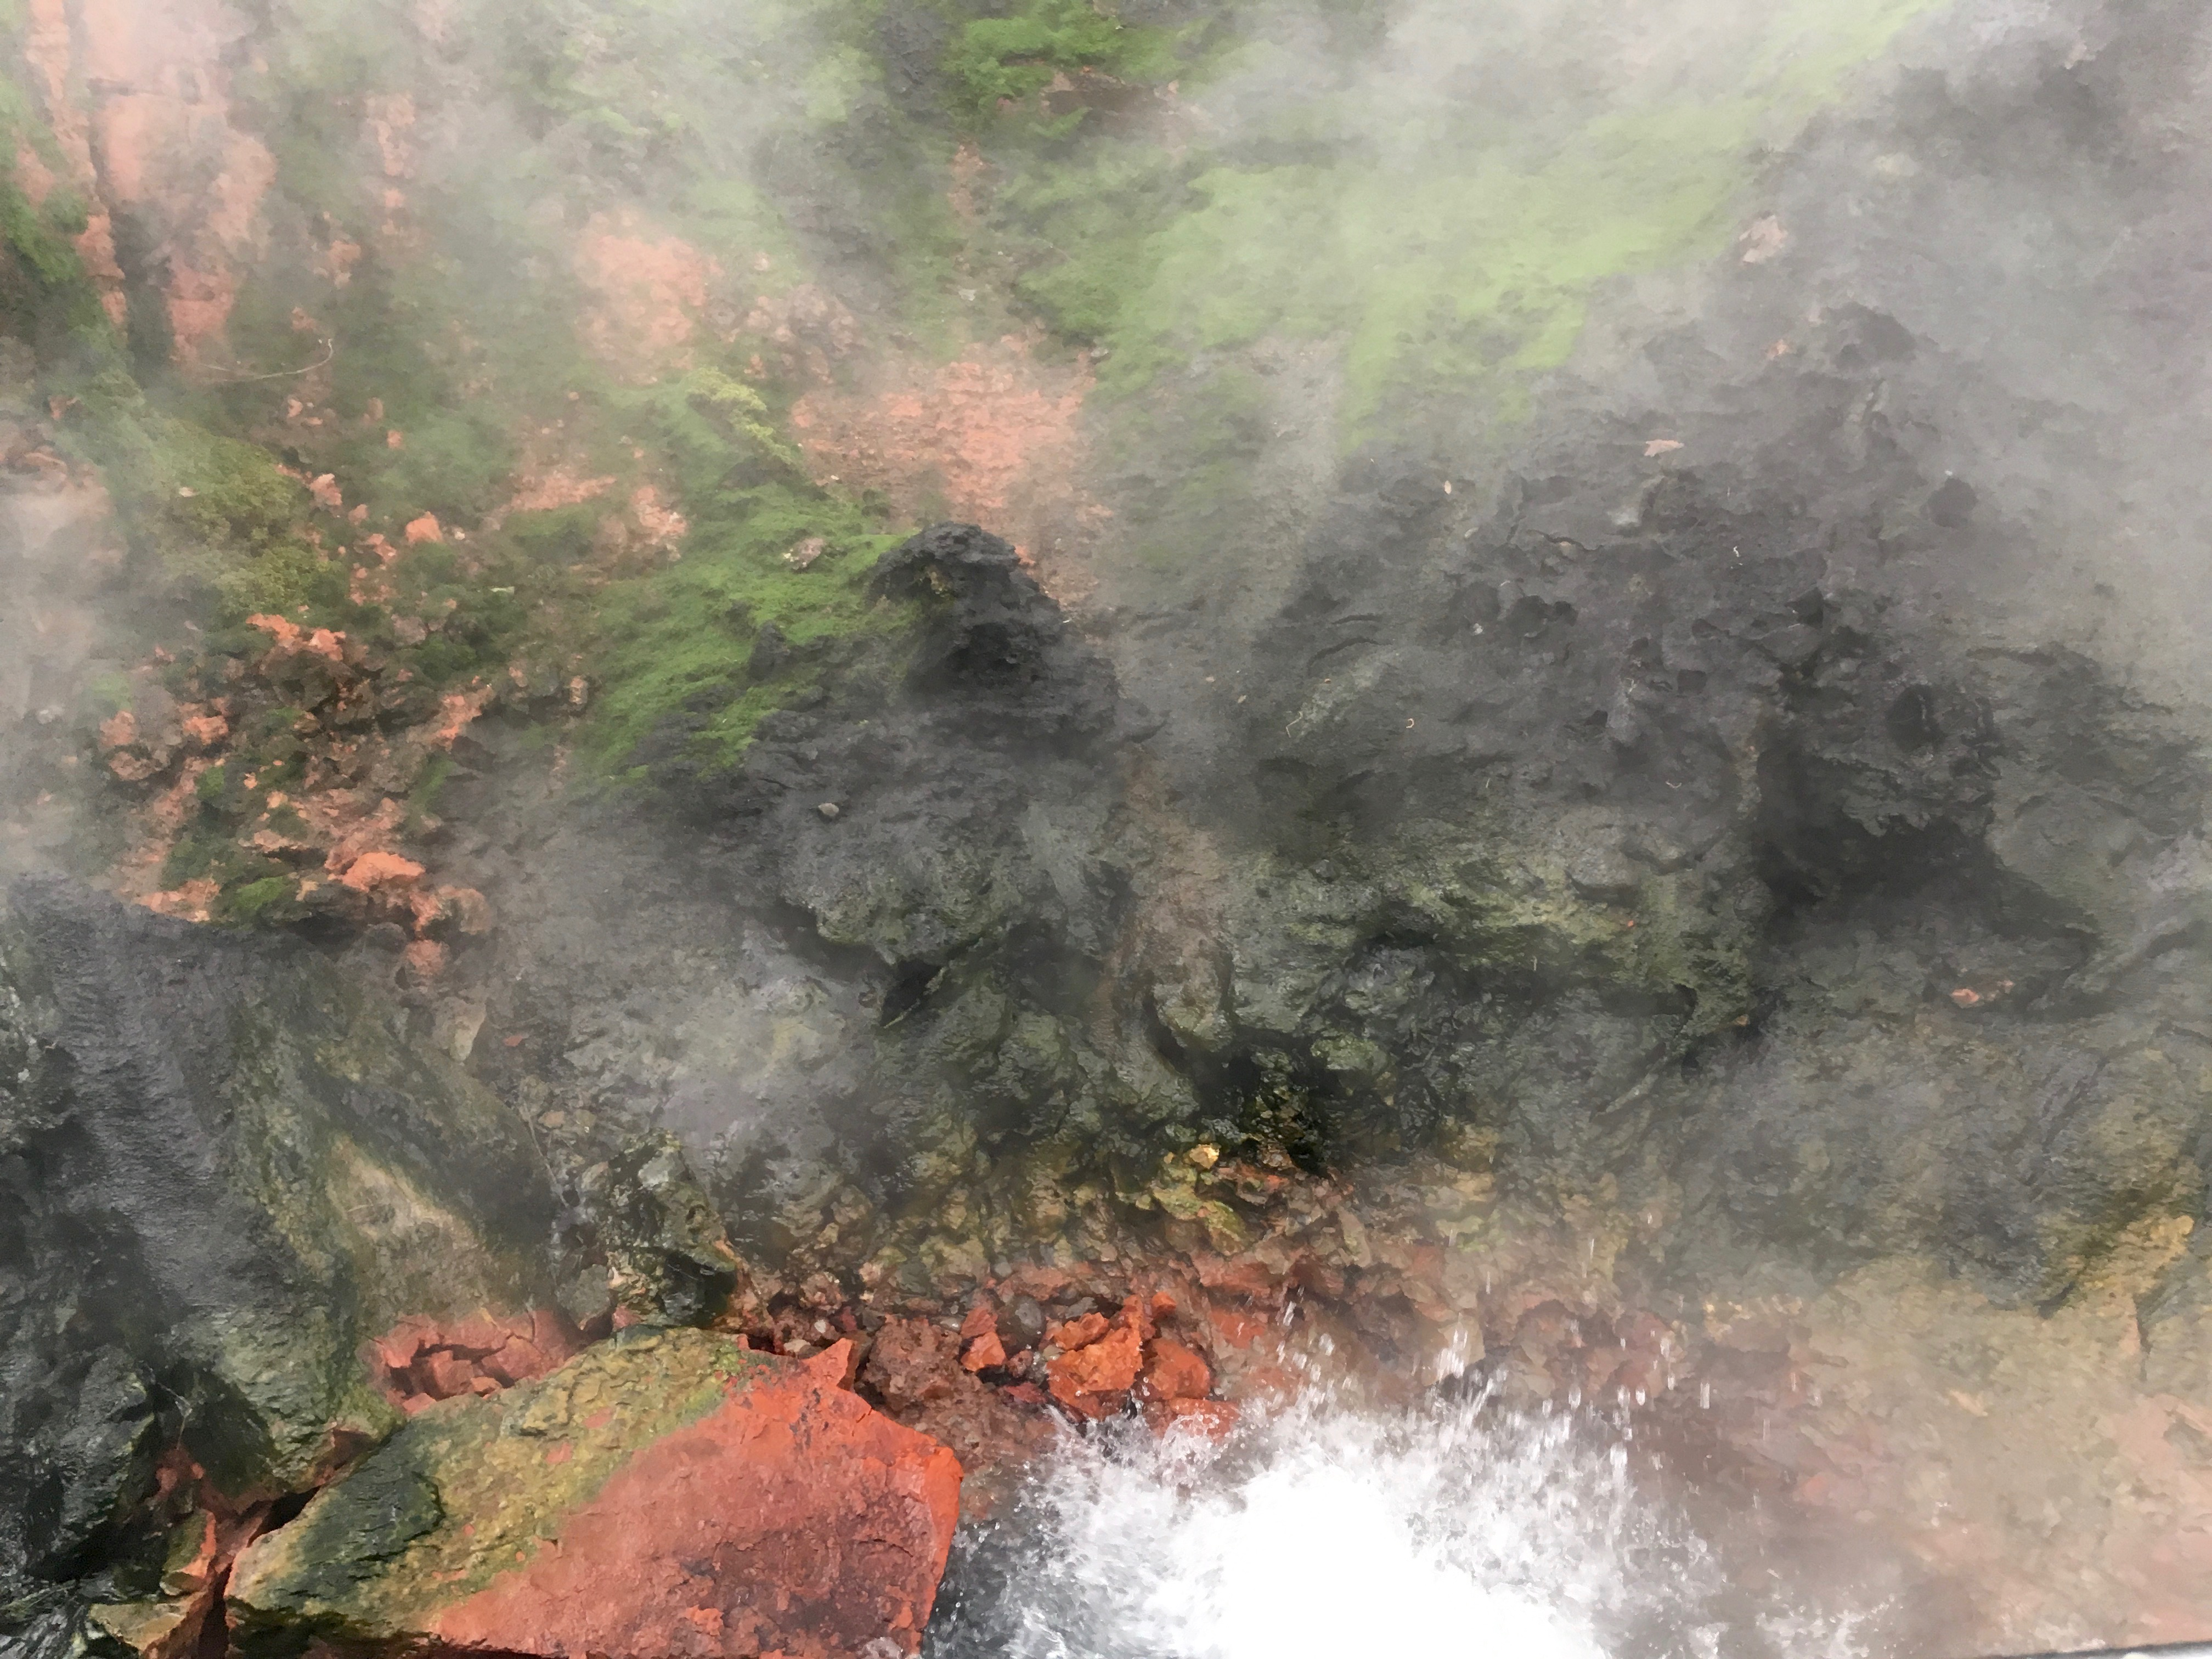 A boiling thermal pool--one of many throughout Iceland. Photo: Tonya Fitzpatrick